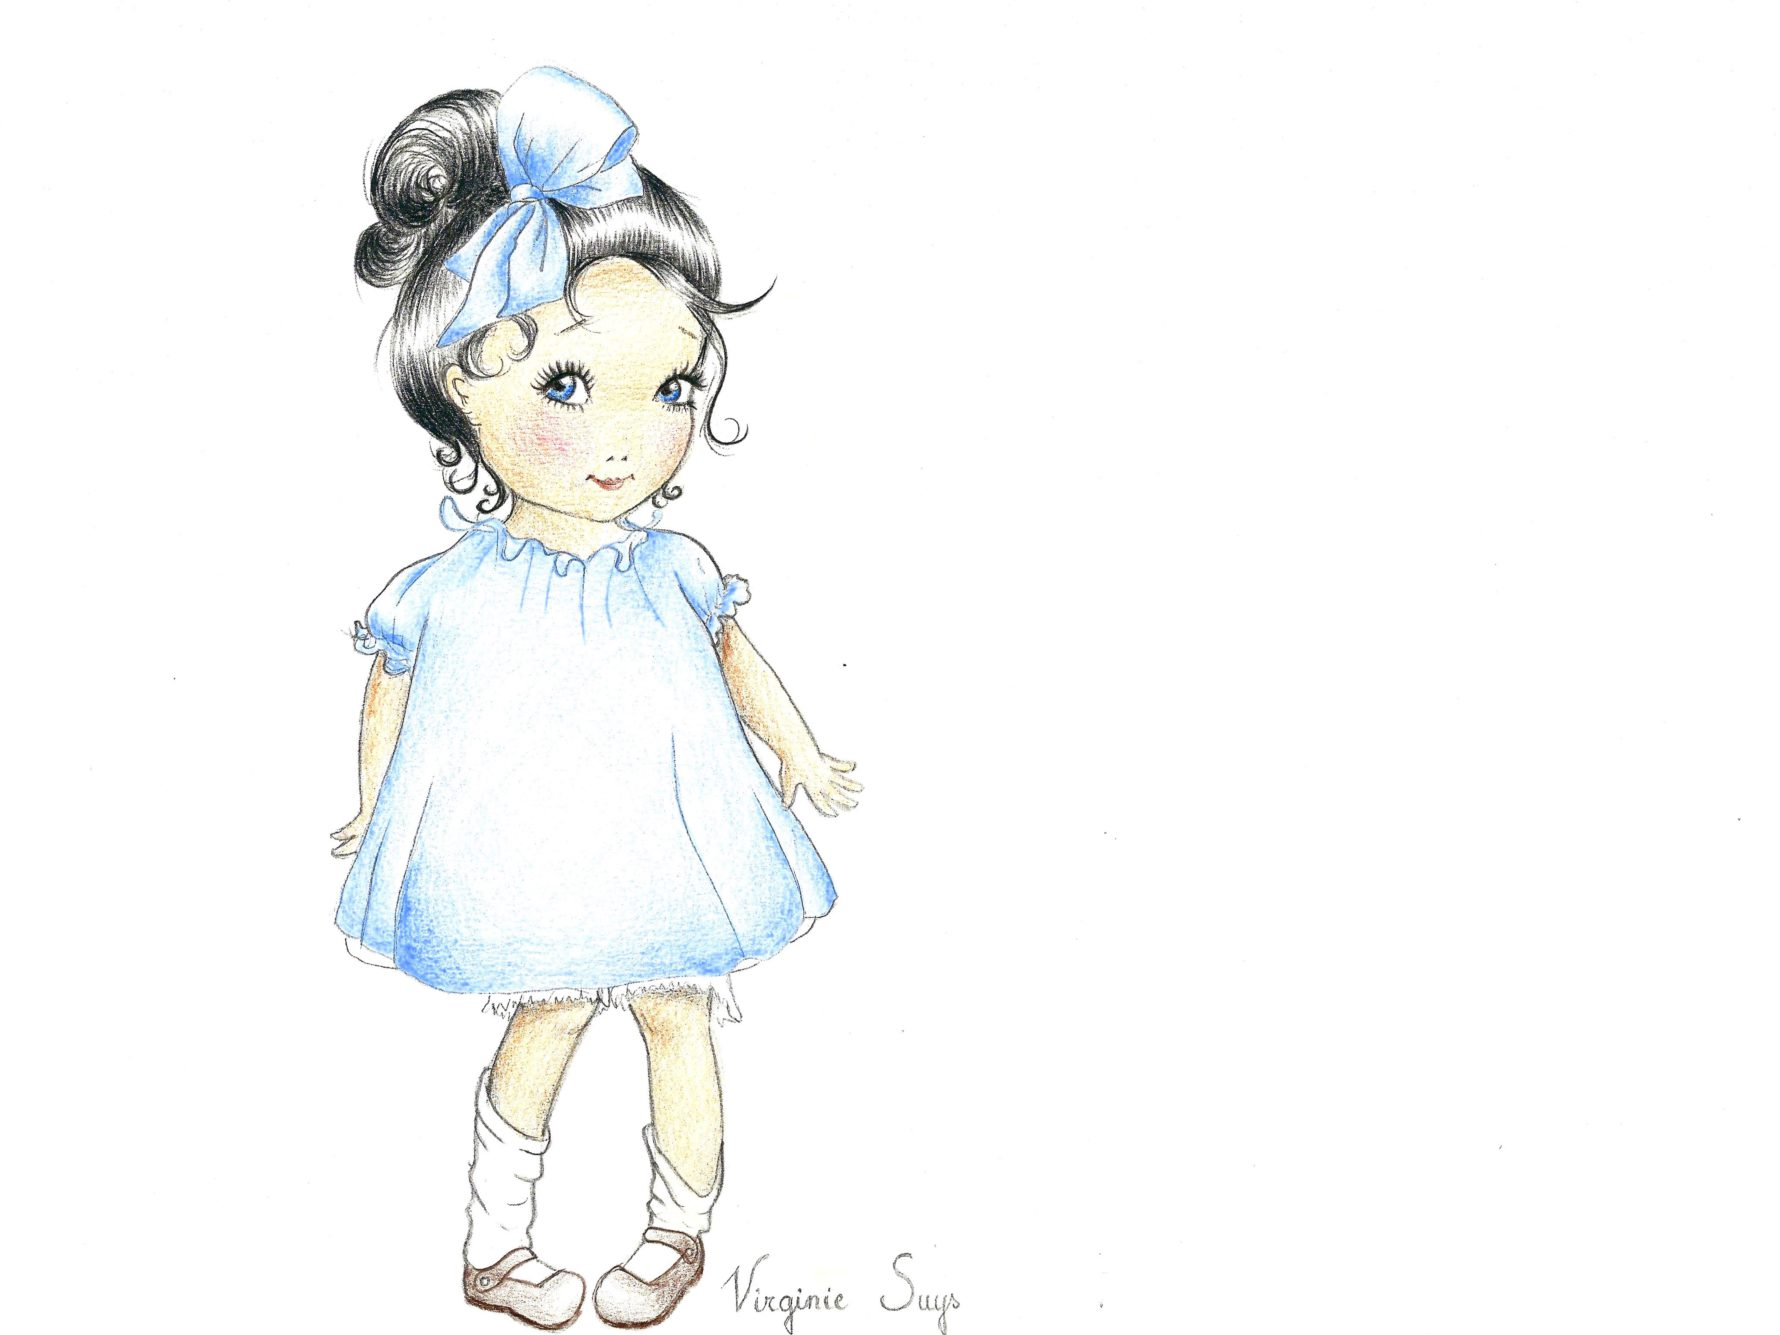 Virginie Suys Girl with bow in blue illustration